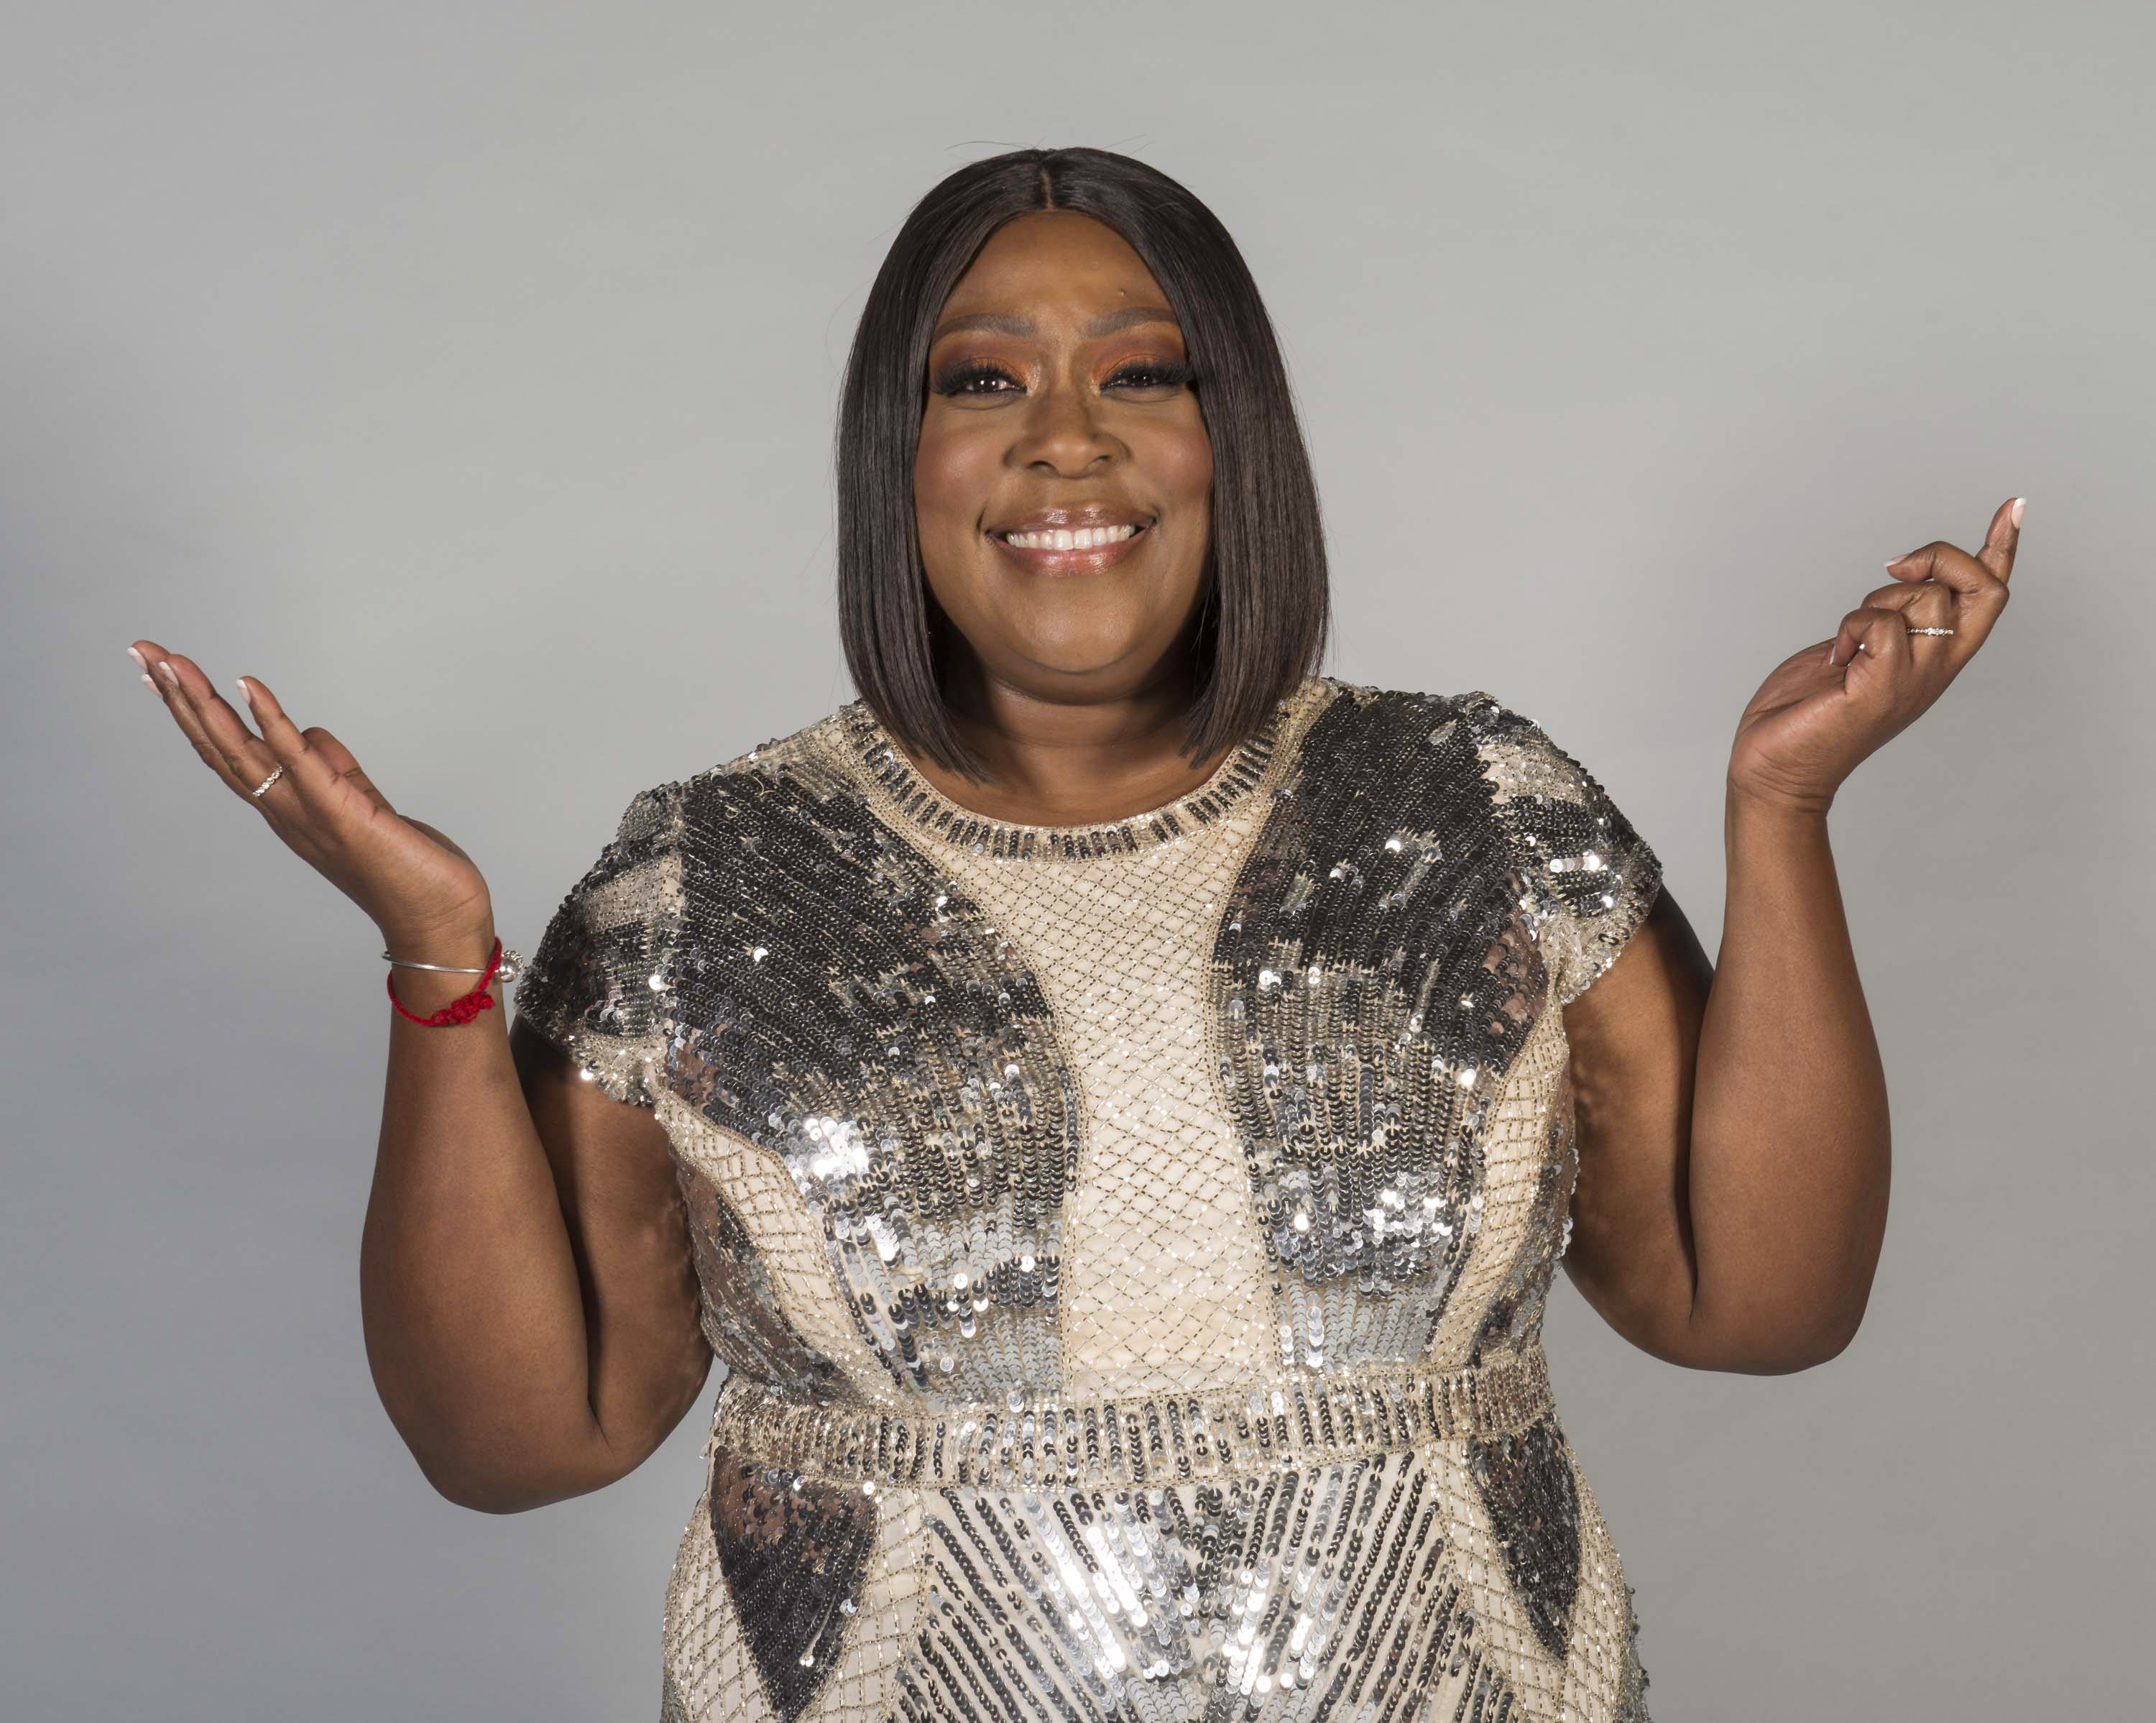 Loni Love poses for portrait at 45th Daytime Emmy Awards - Portraits by The Artists Project on April 29, 2018. | Photo: GettyImages